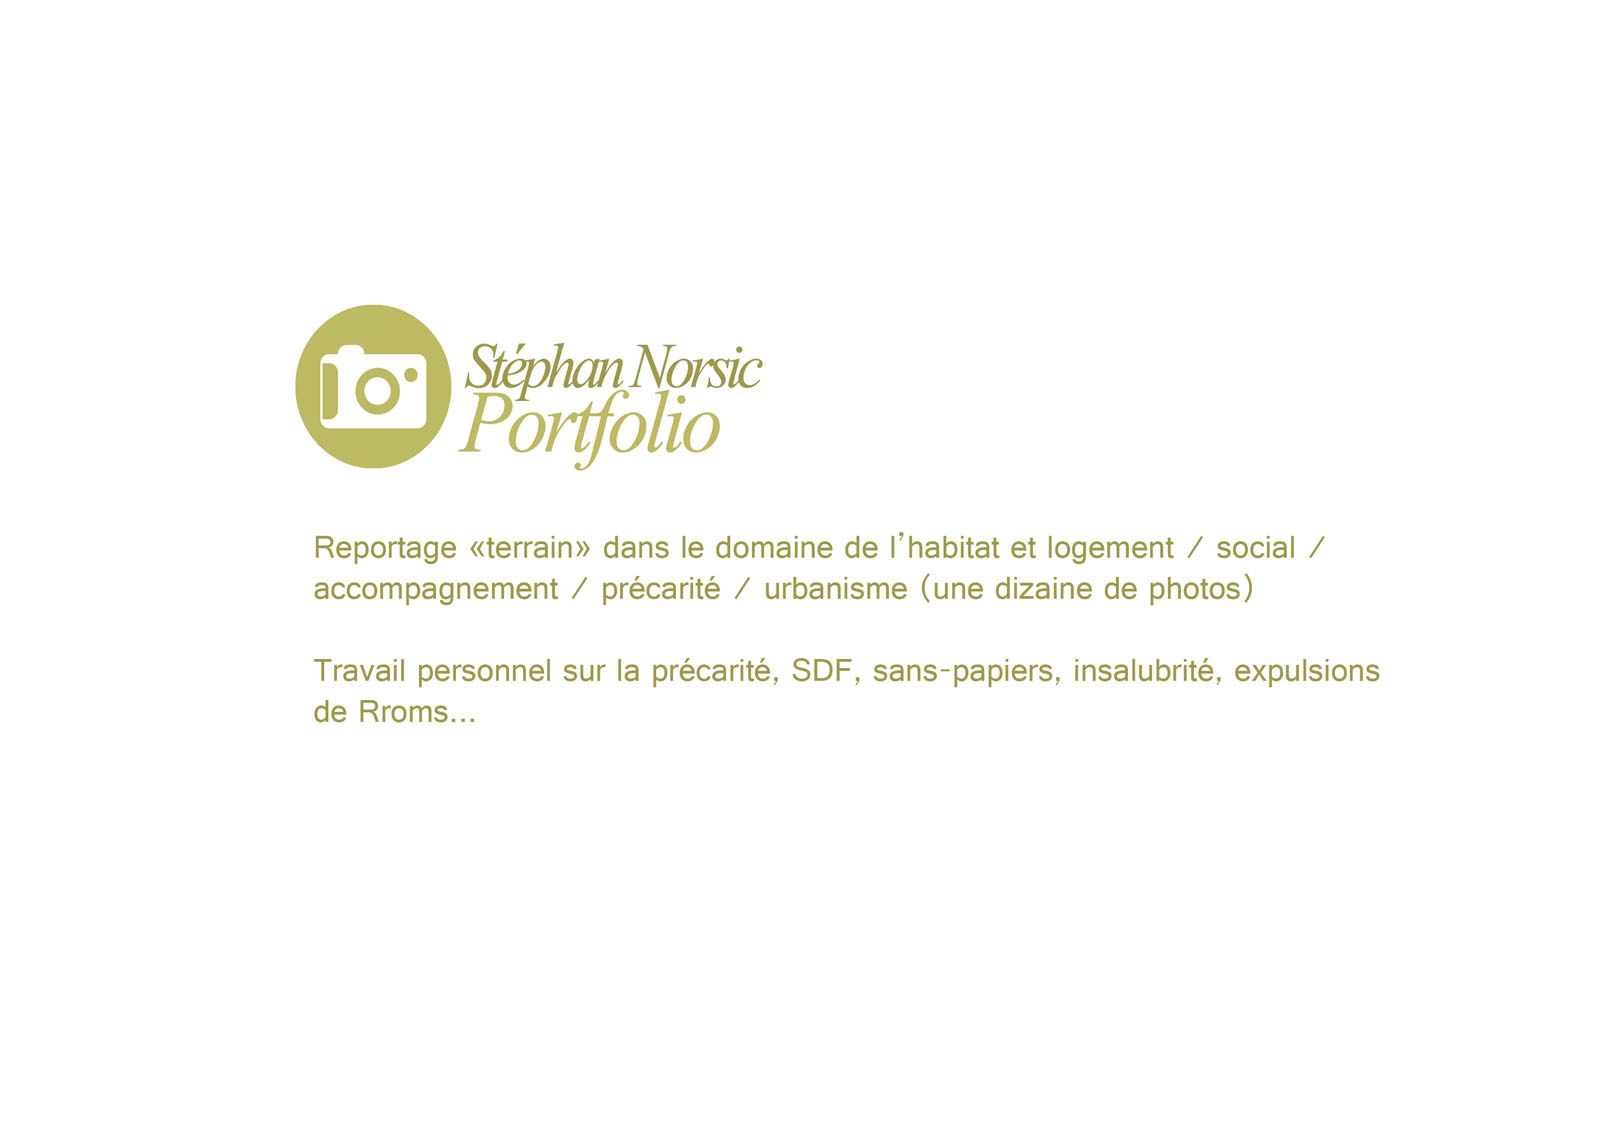 001-Norsic-Reportage-2-001